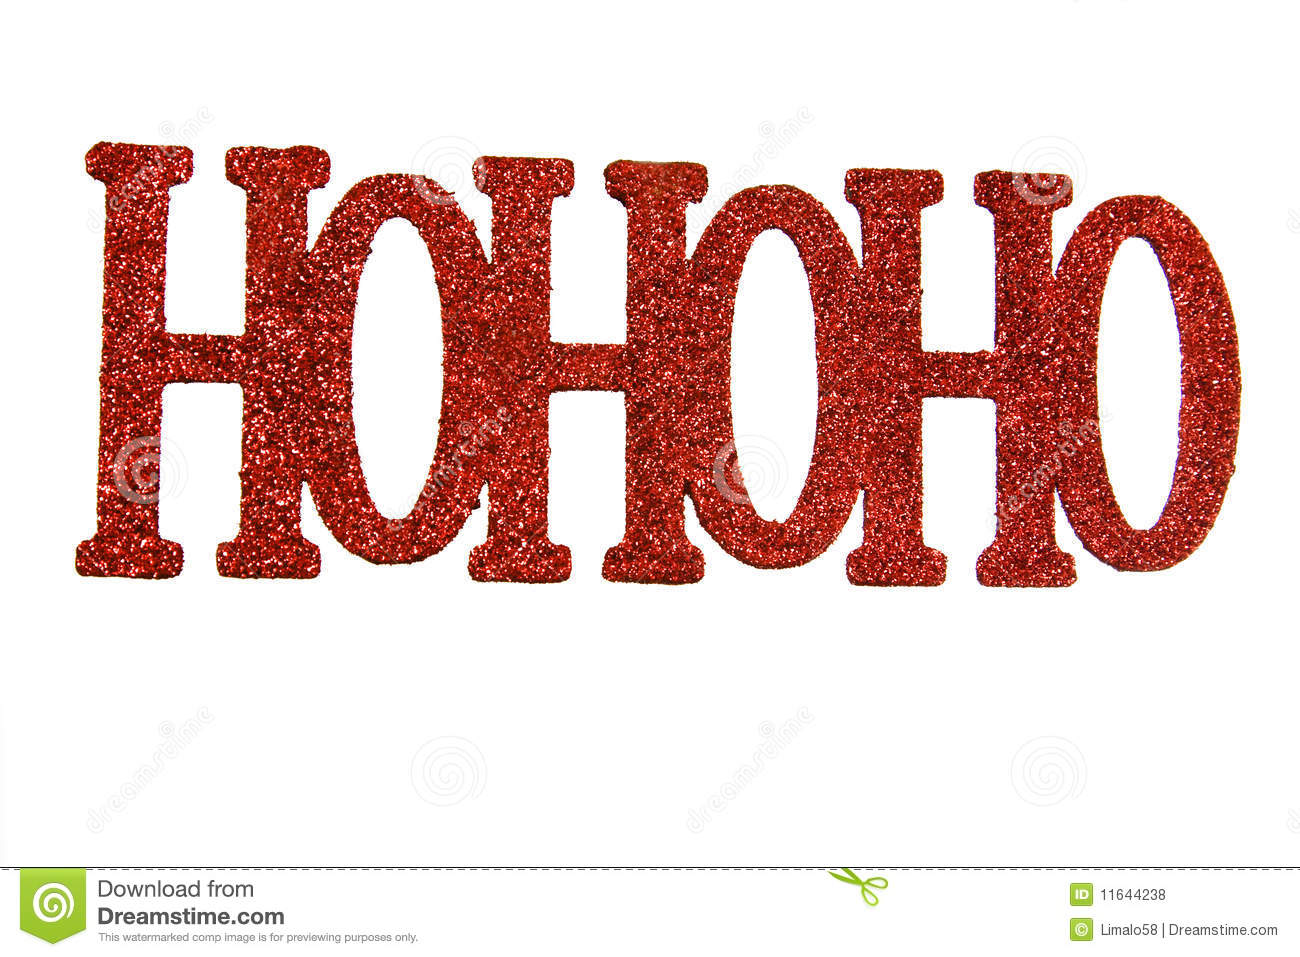 The word ho, ho, ho in red letters against a white background.